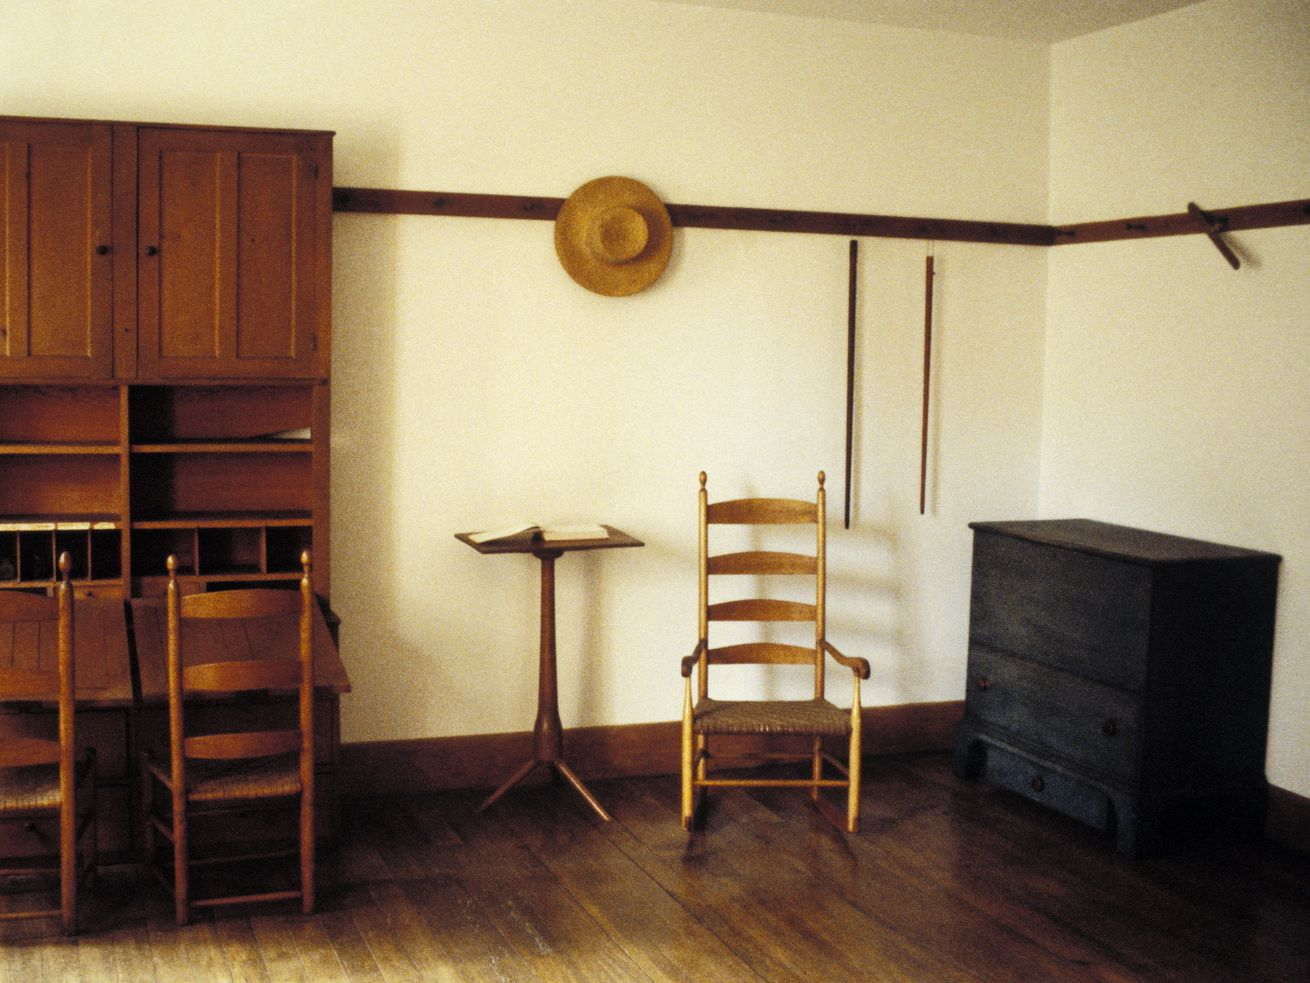 The Hancock Shaker Village preserves the craftsmanship and way of life of the utopian spiritual sect, which is known for its minimal and utilitarian furniture.